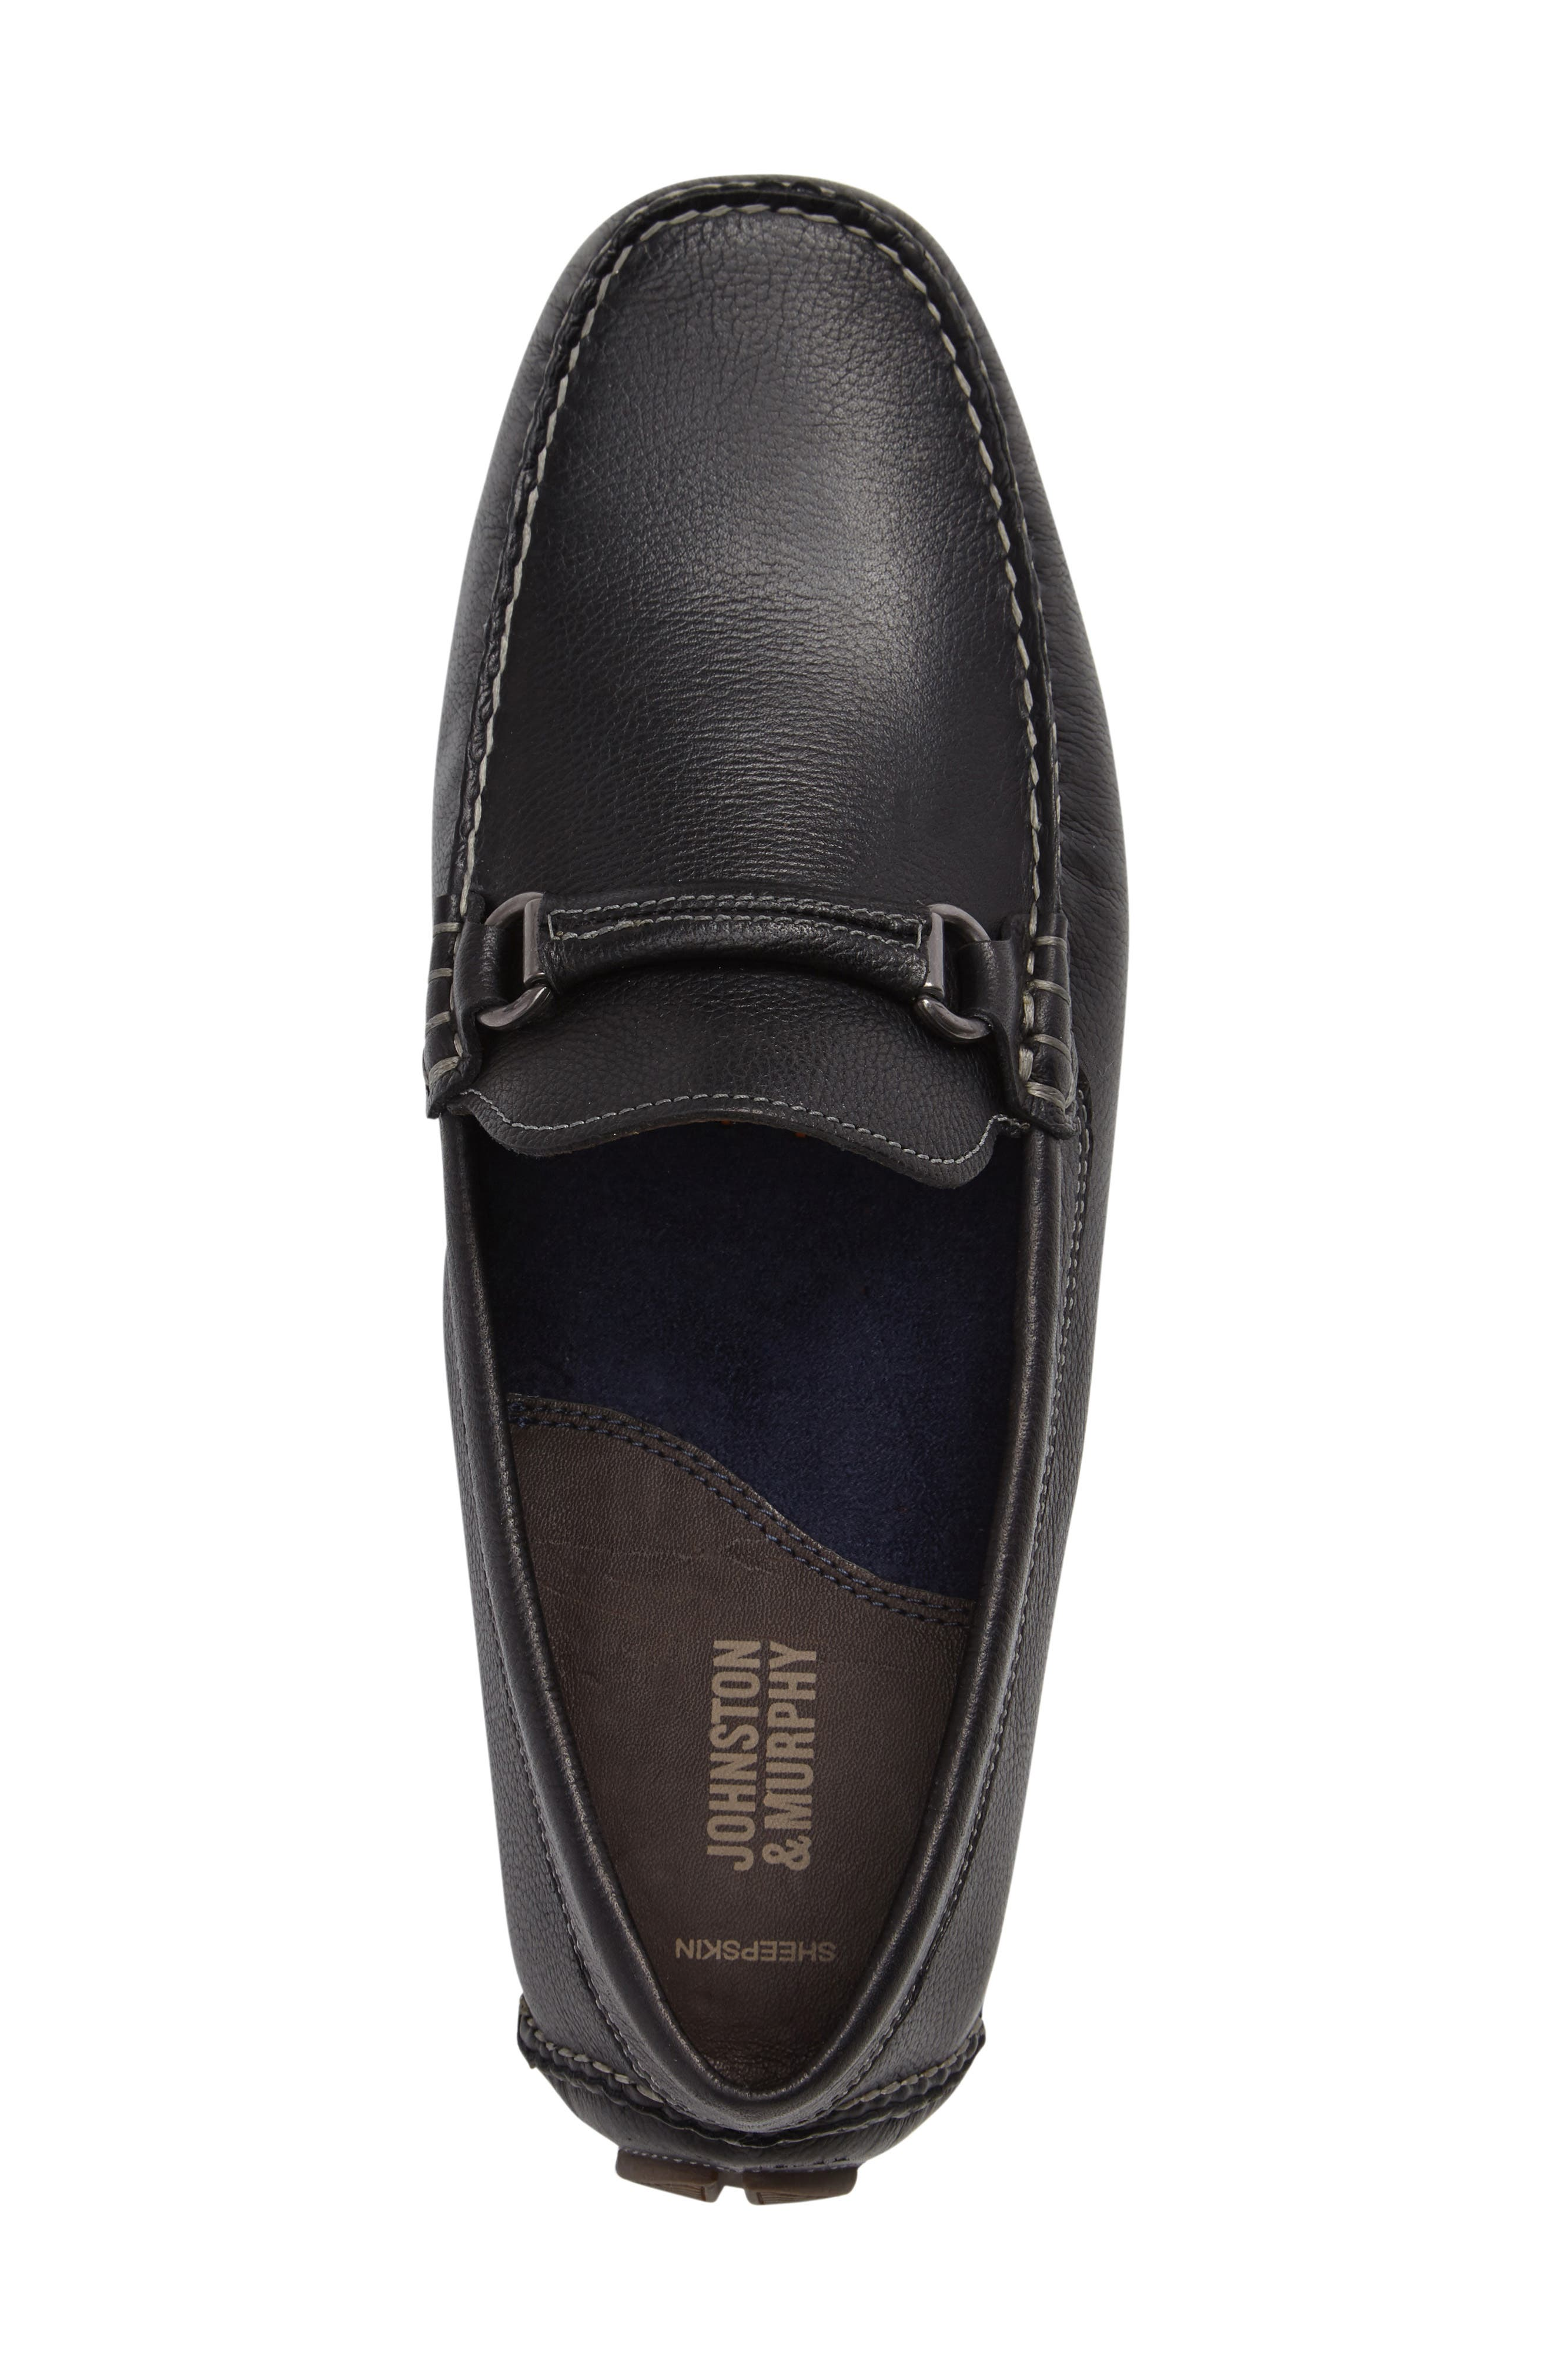 JOHNSTON & MURPHY, Gibson Bit Driving Loafer, Alternate thumbnail 3, color, BLACK LEATHER